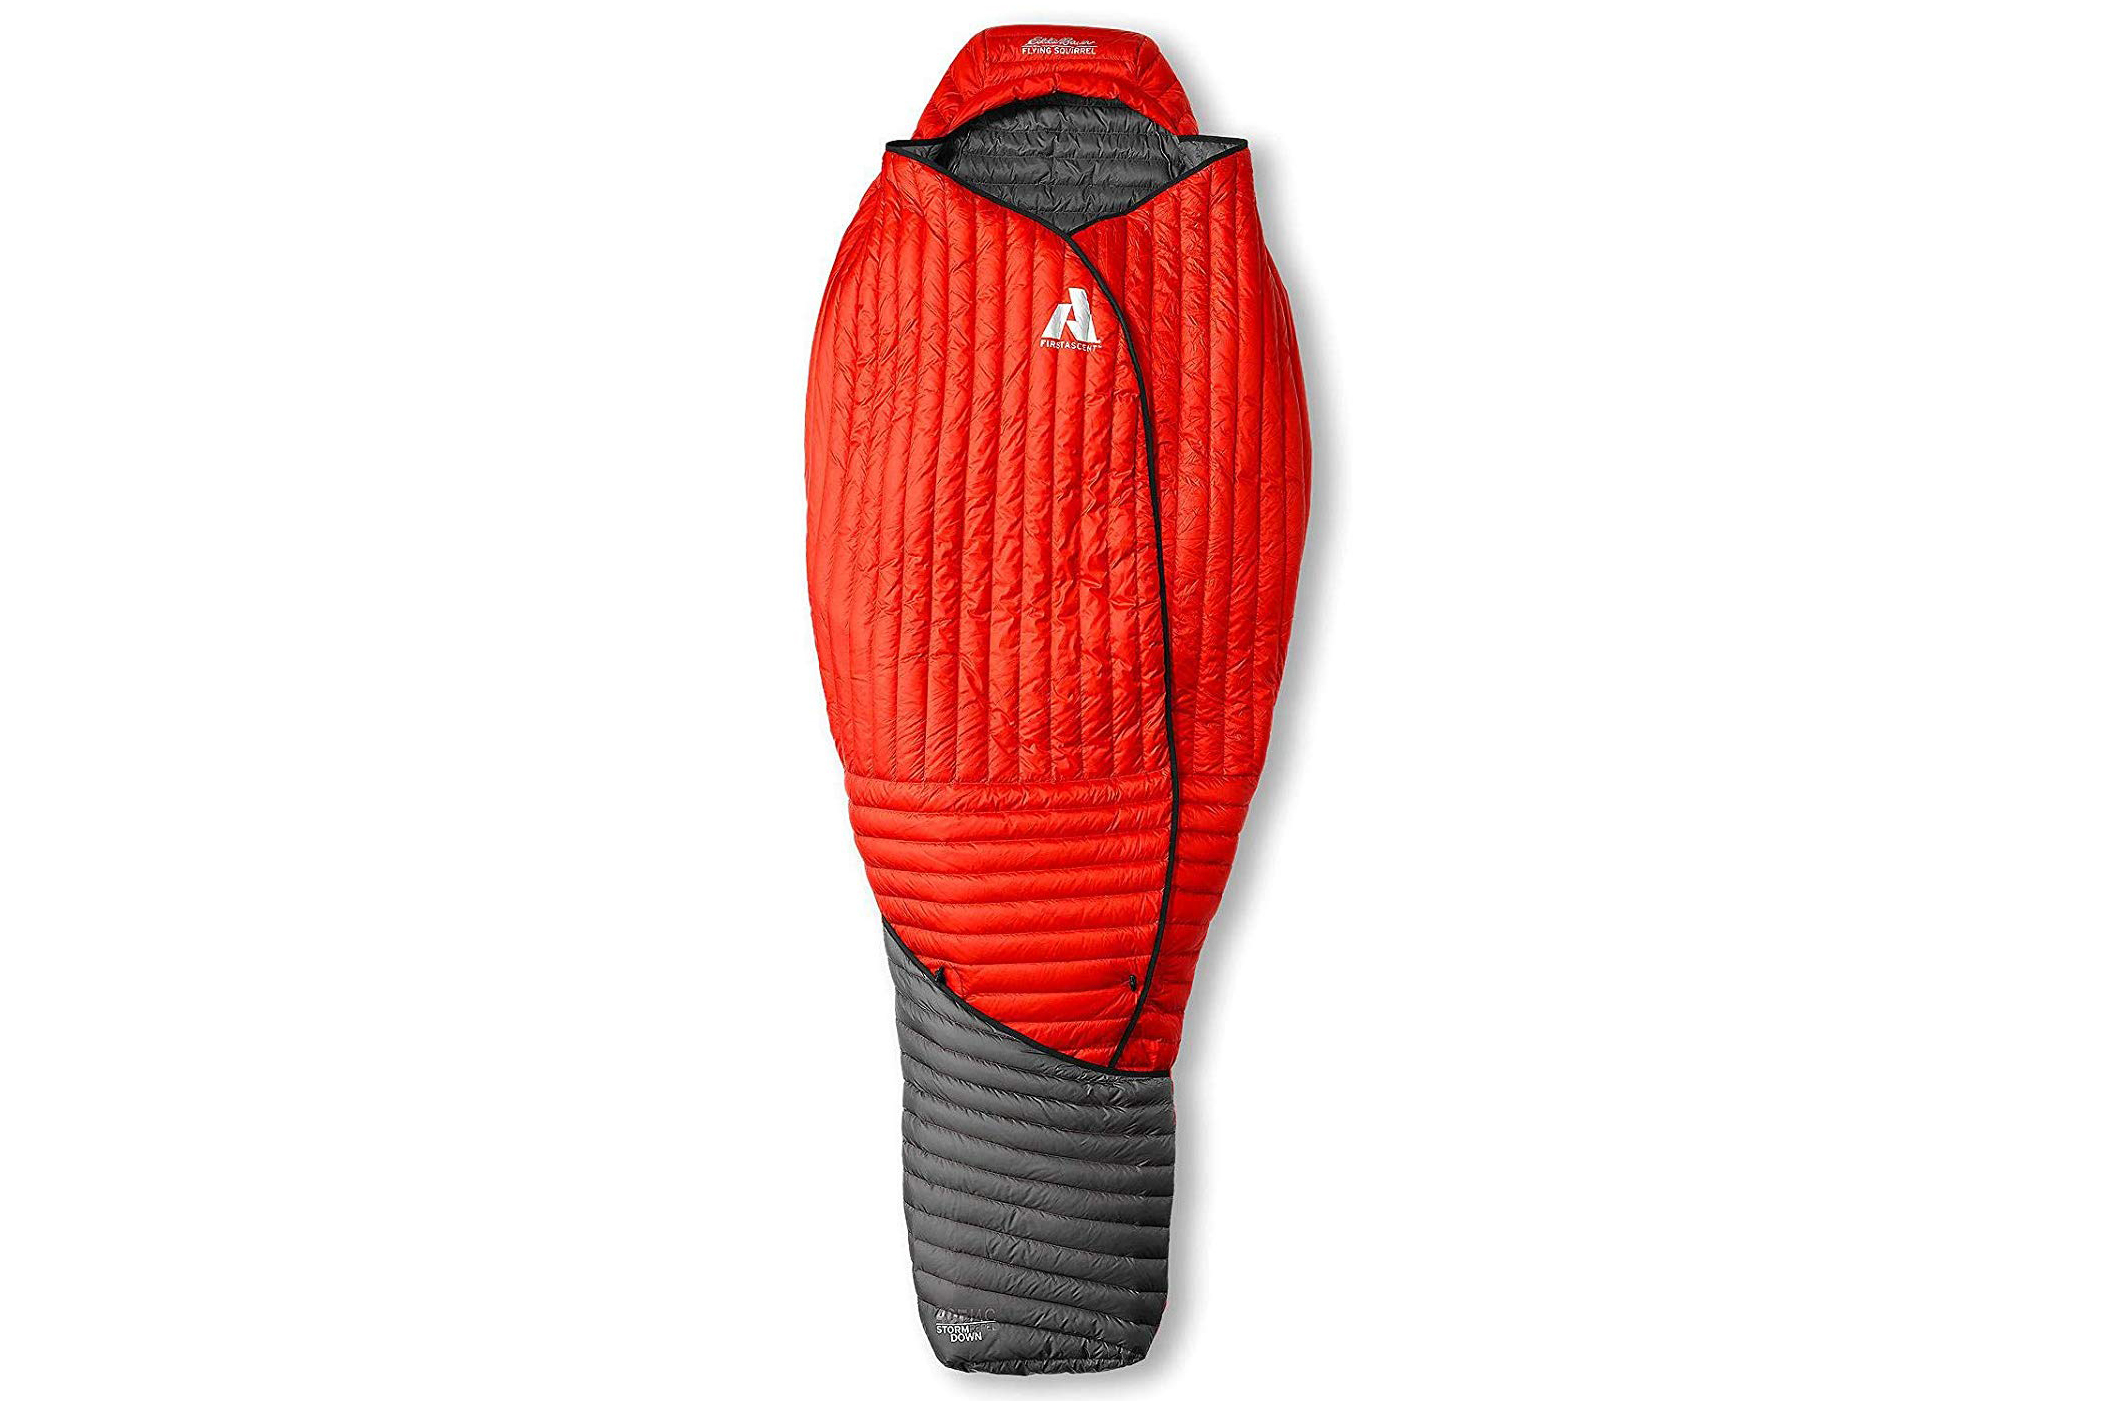 Eddie Bauer Flying Squirrel sleeping bag